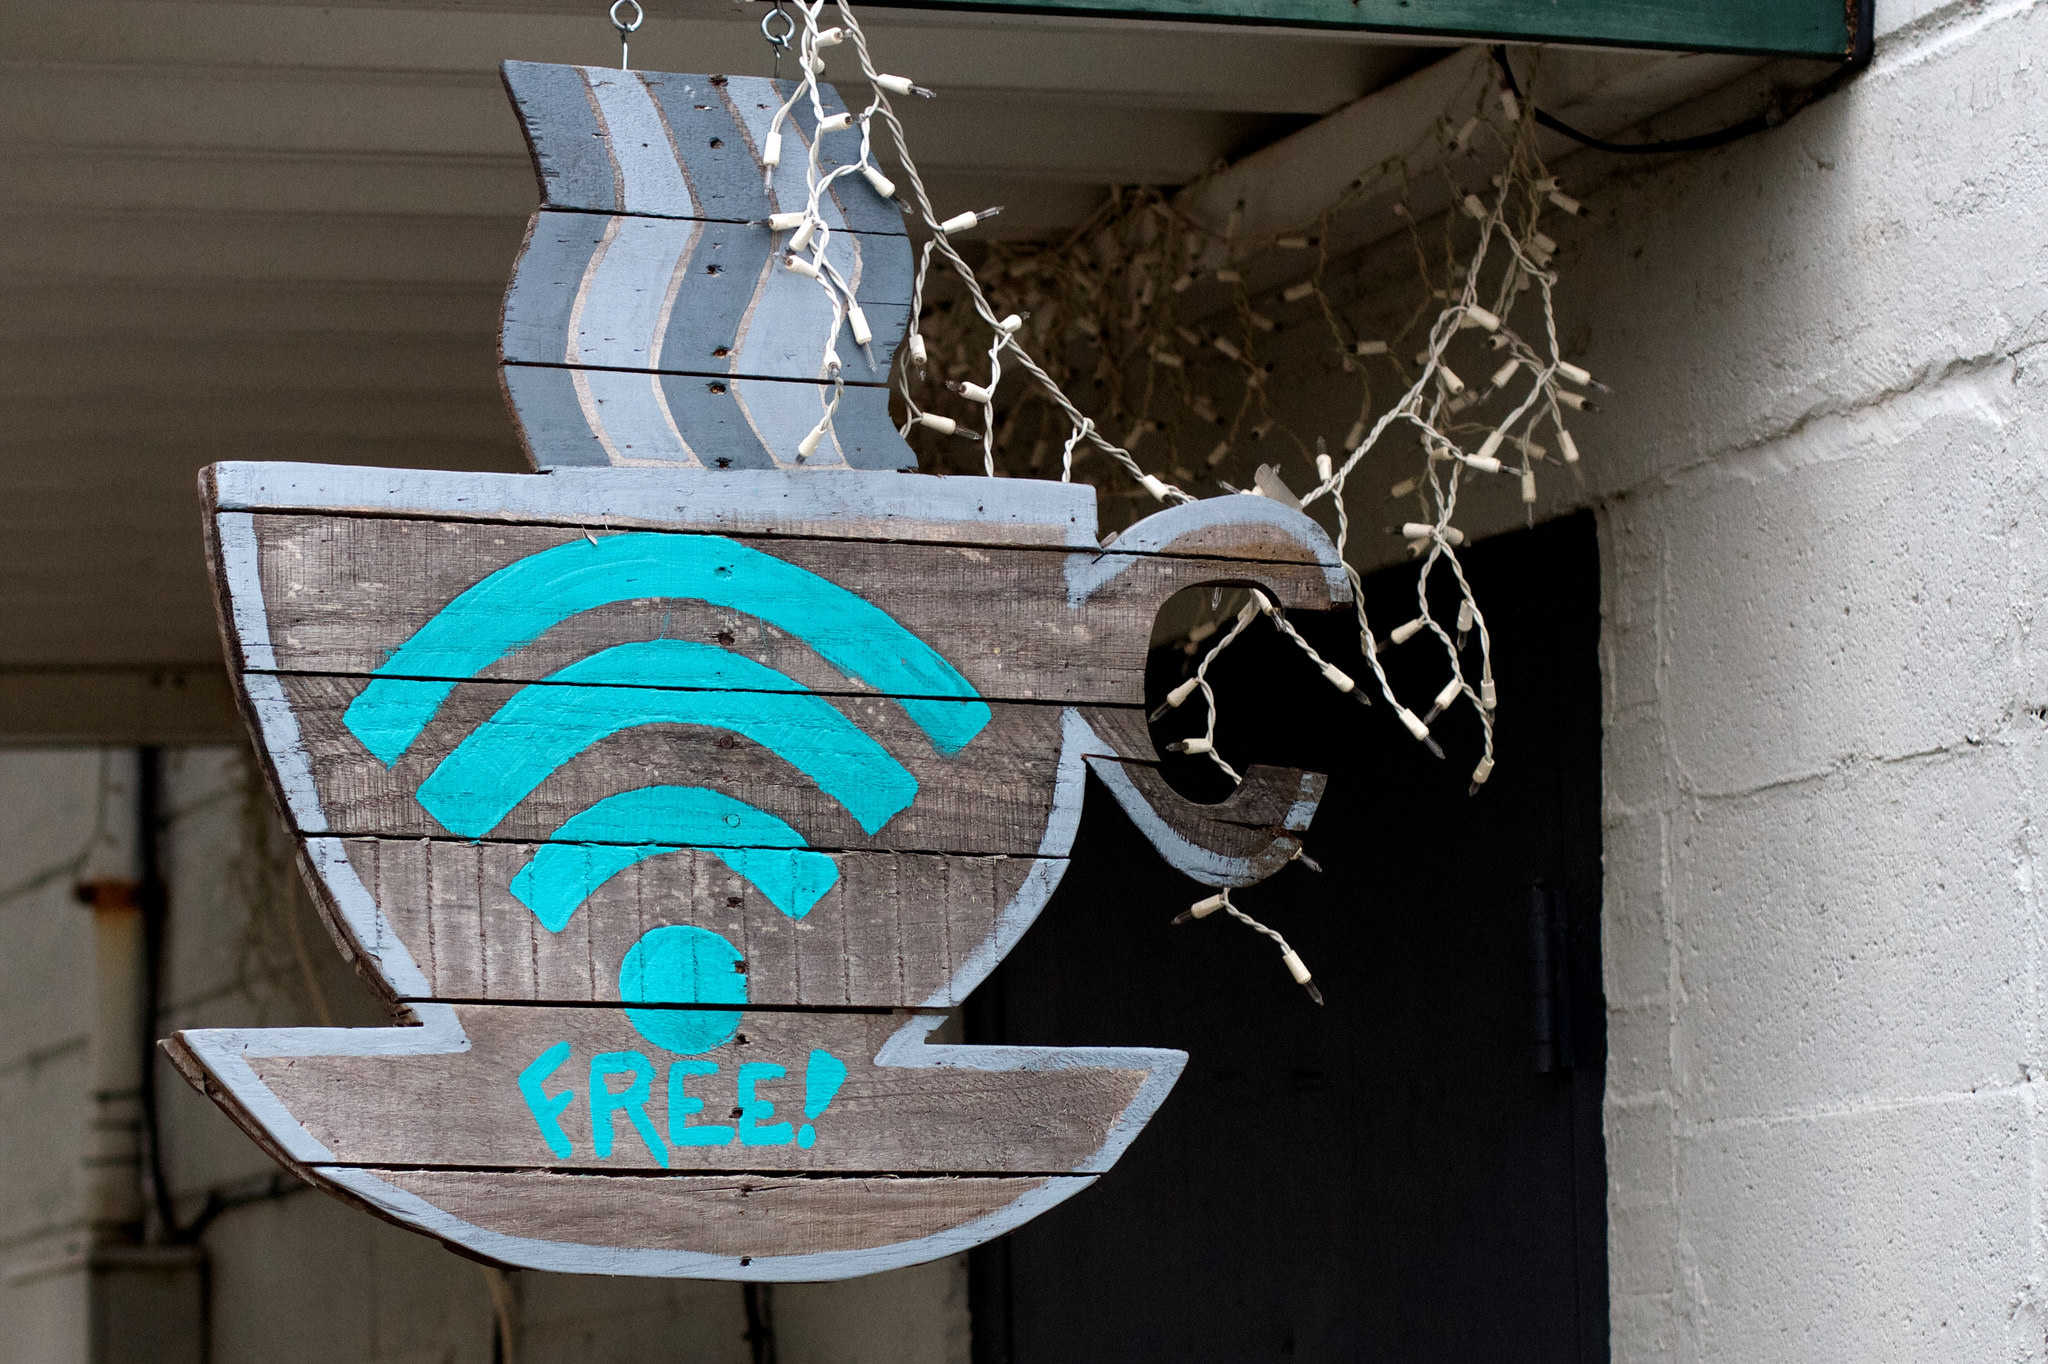 Public wifi security risks and how to use it safely and securely